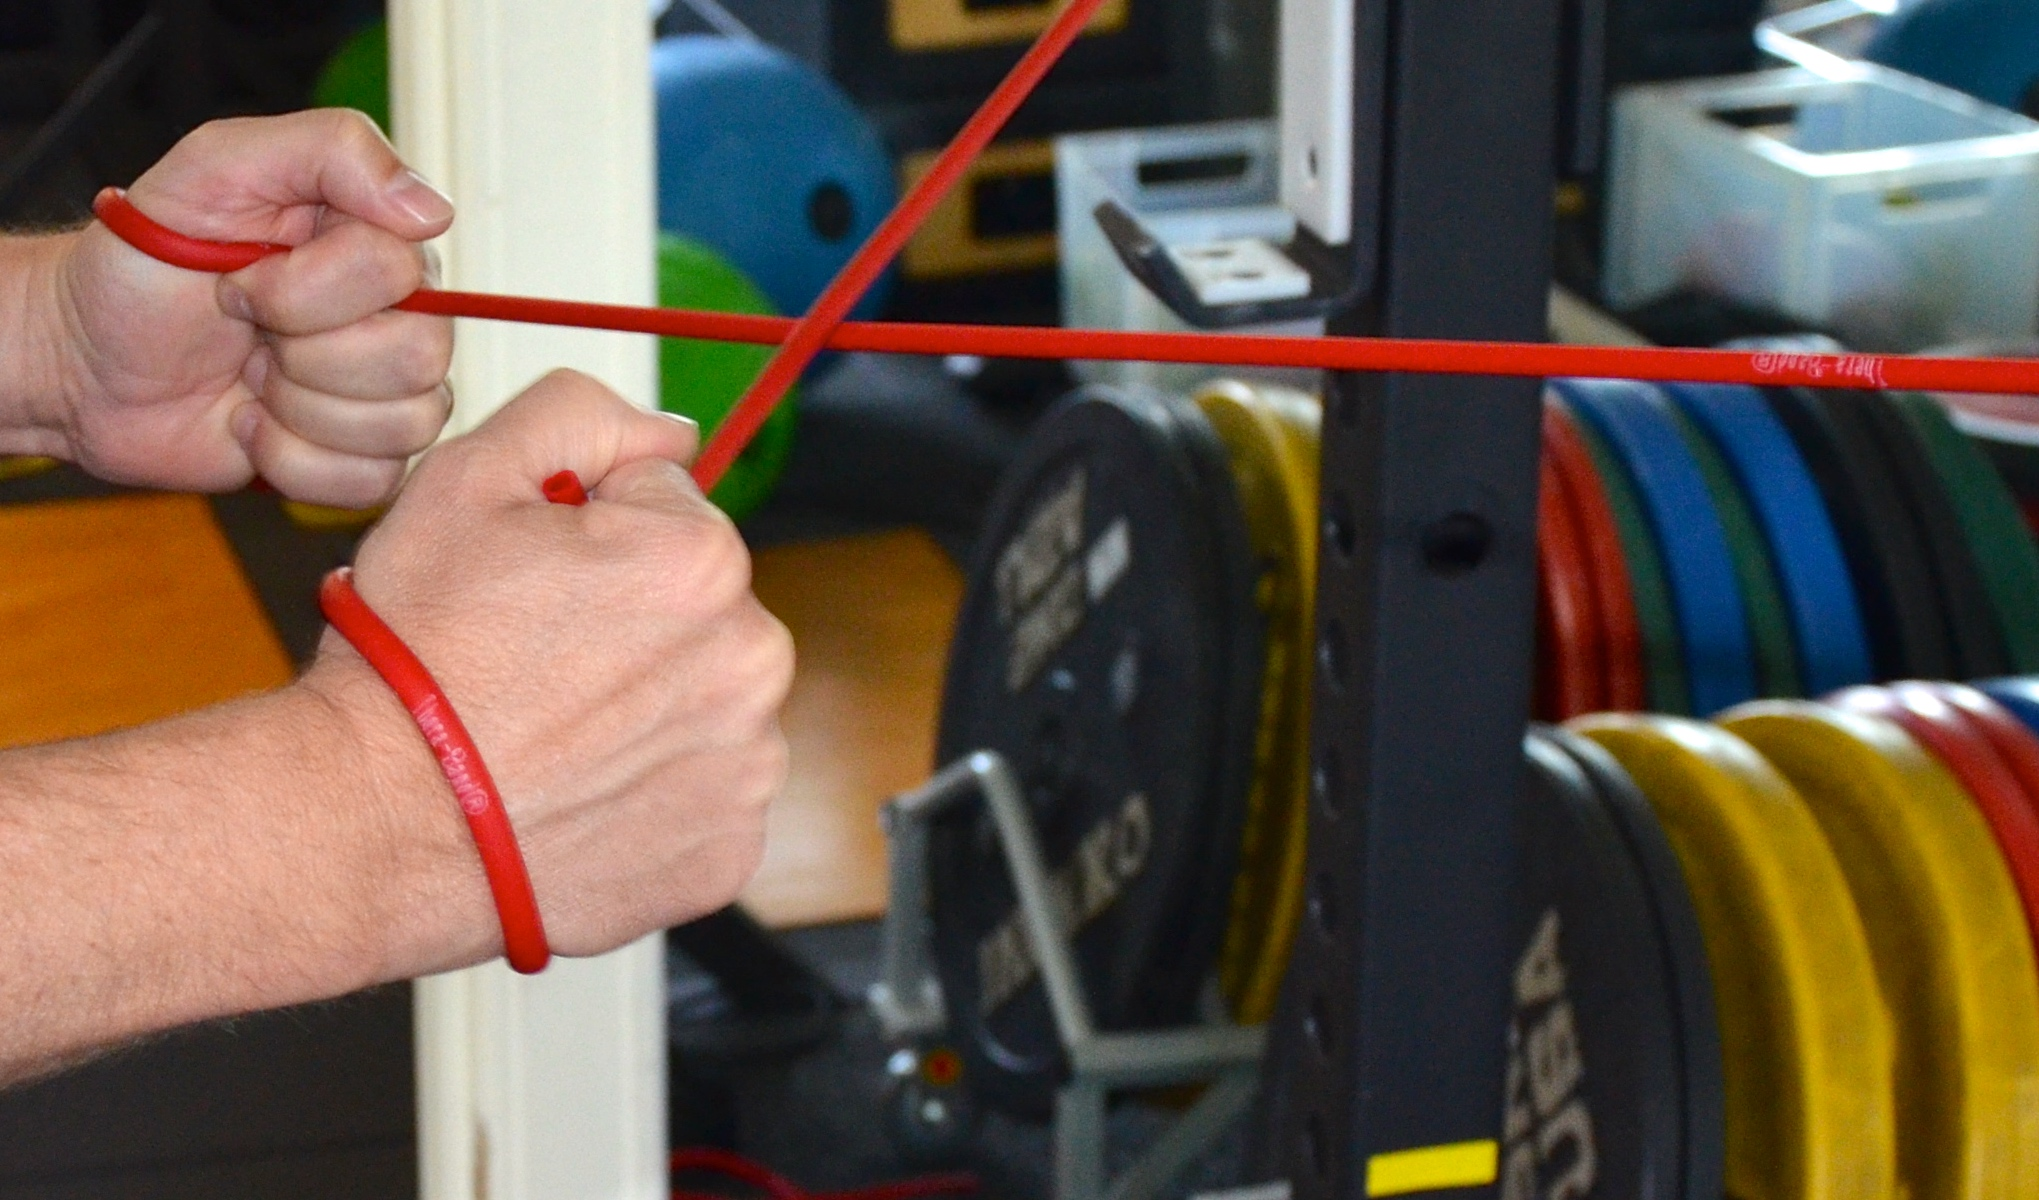 most places can be adequate to do some of the preventive & rehab drills that we prescribe, given their portability. for instance, resistance-bands.